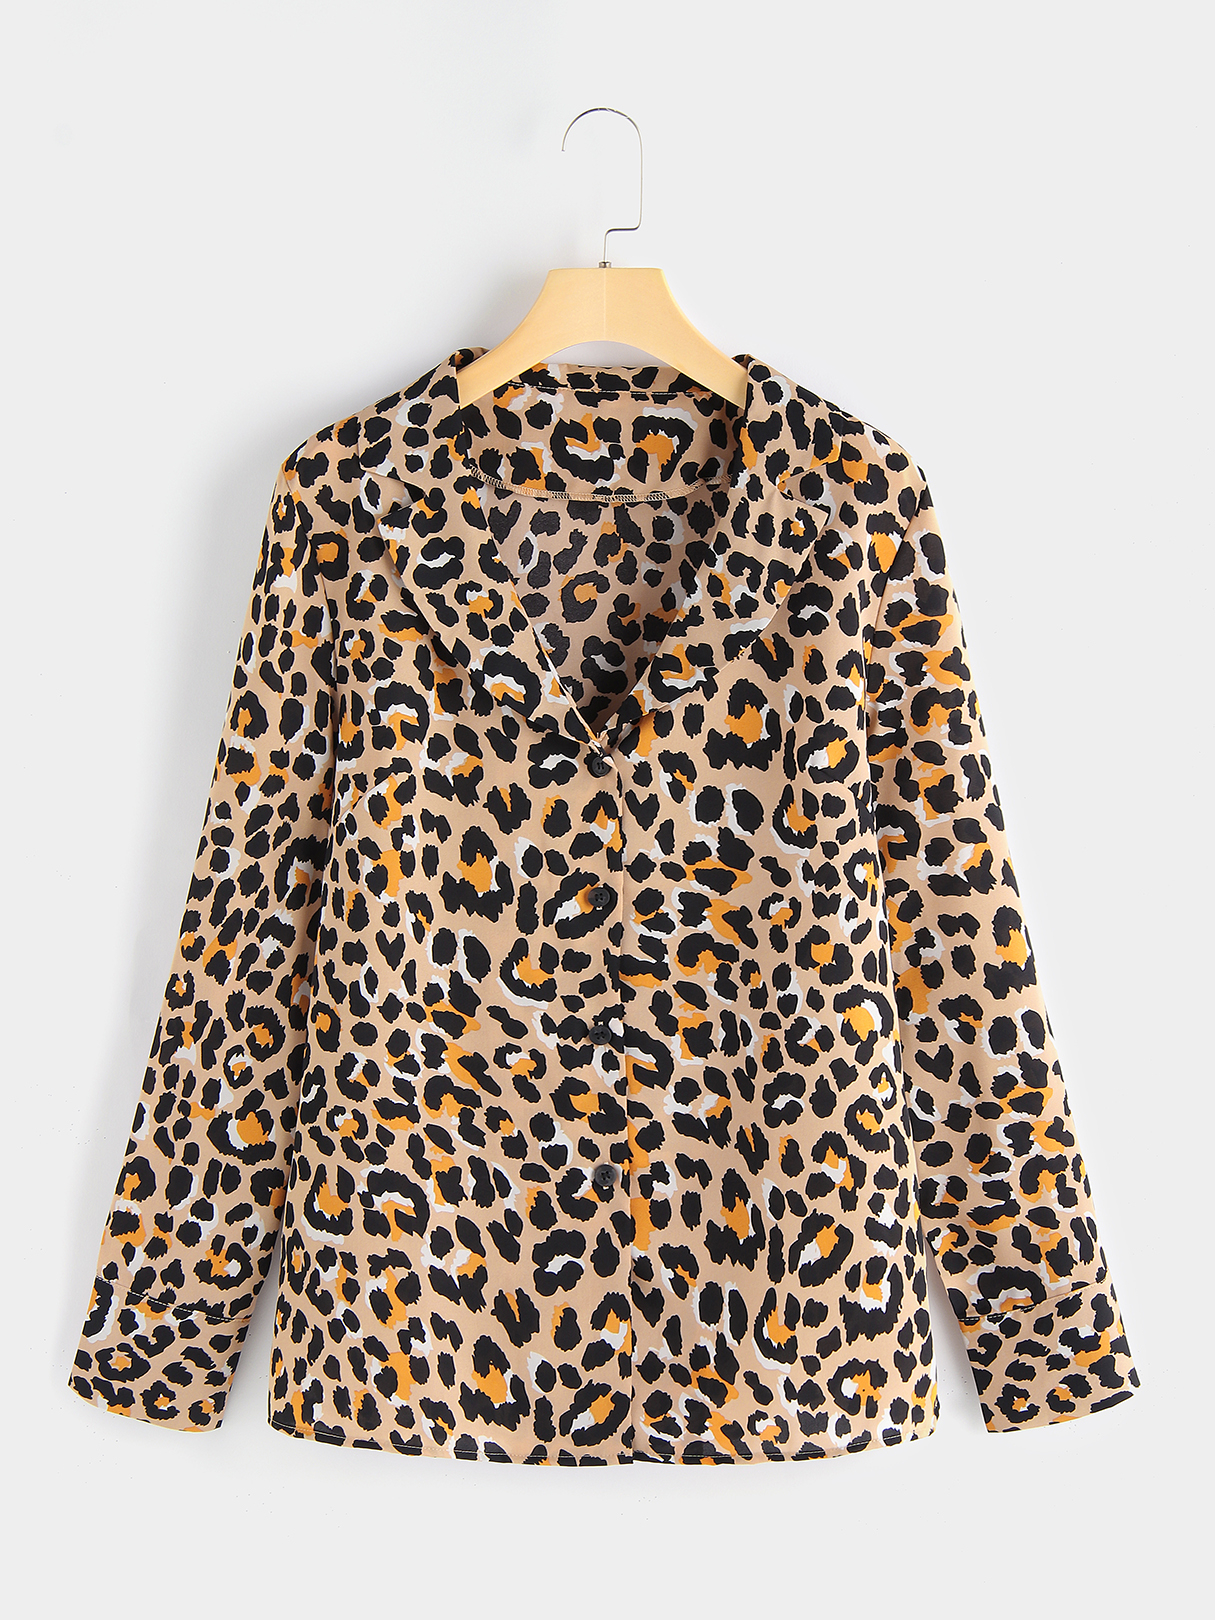 Leopard Single Breasted Design Lapel Collar Long Sleeves Shirt, Multi